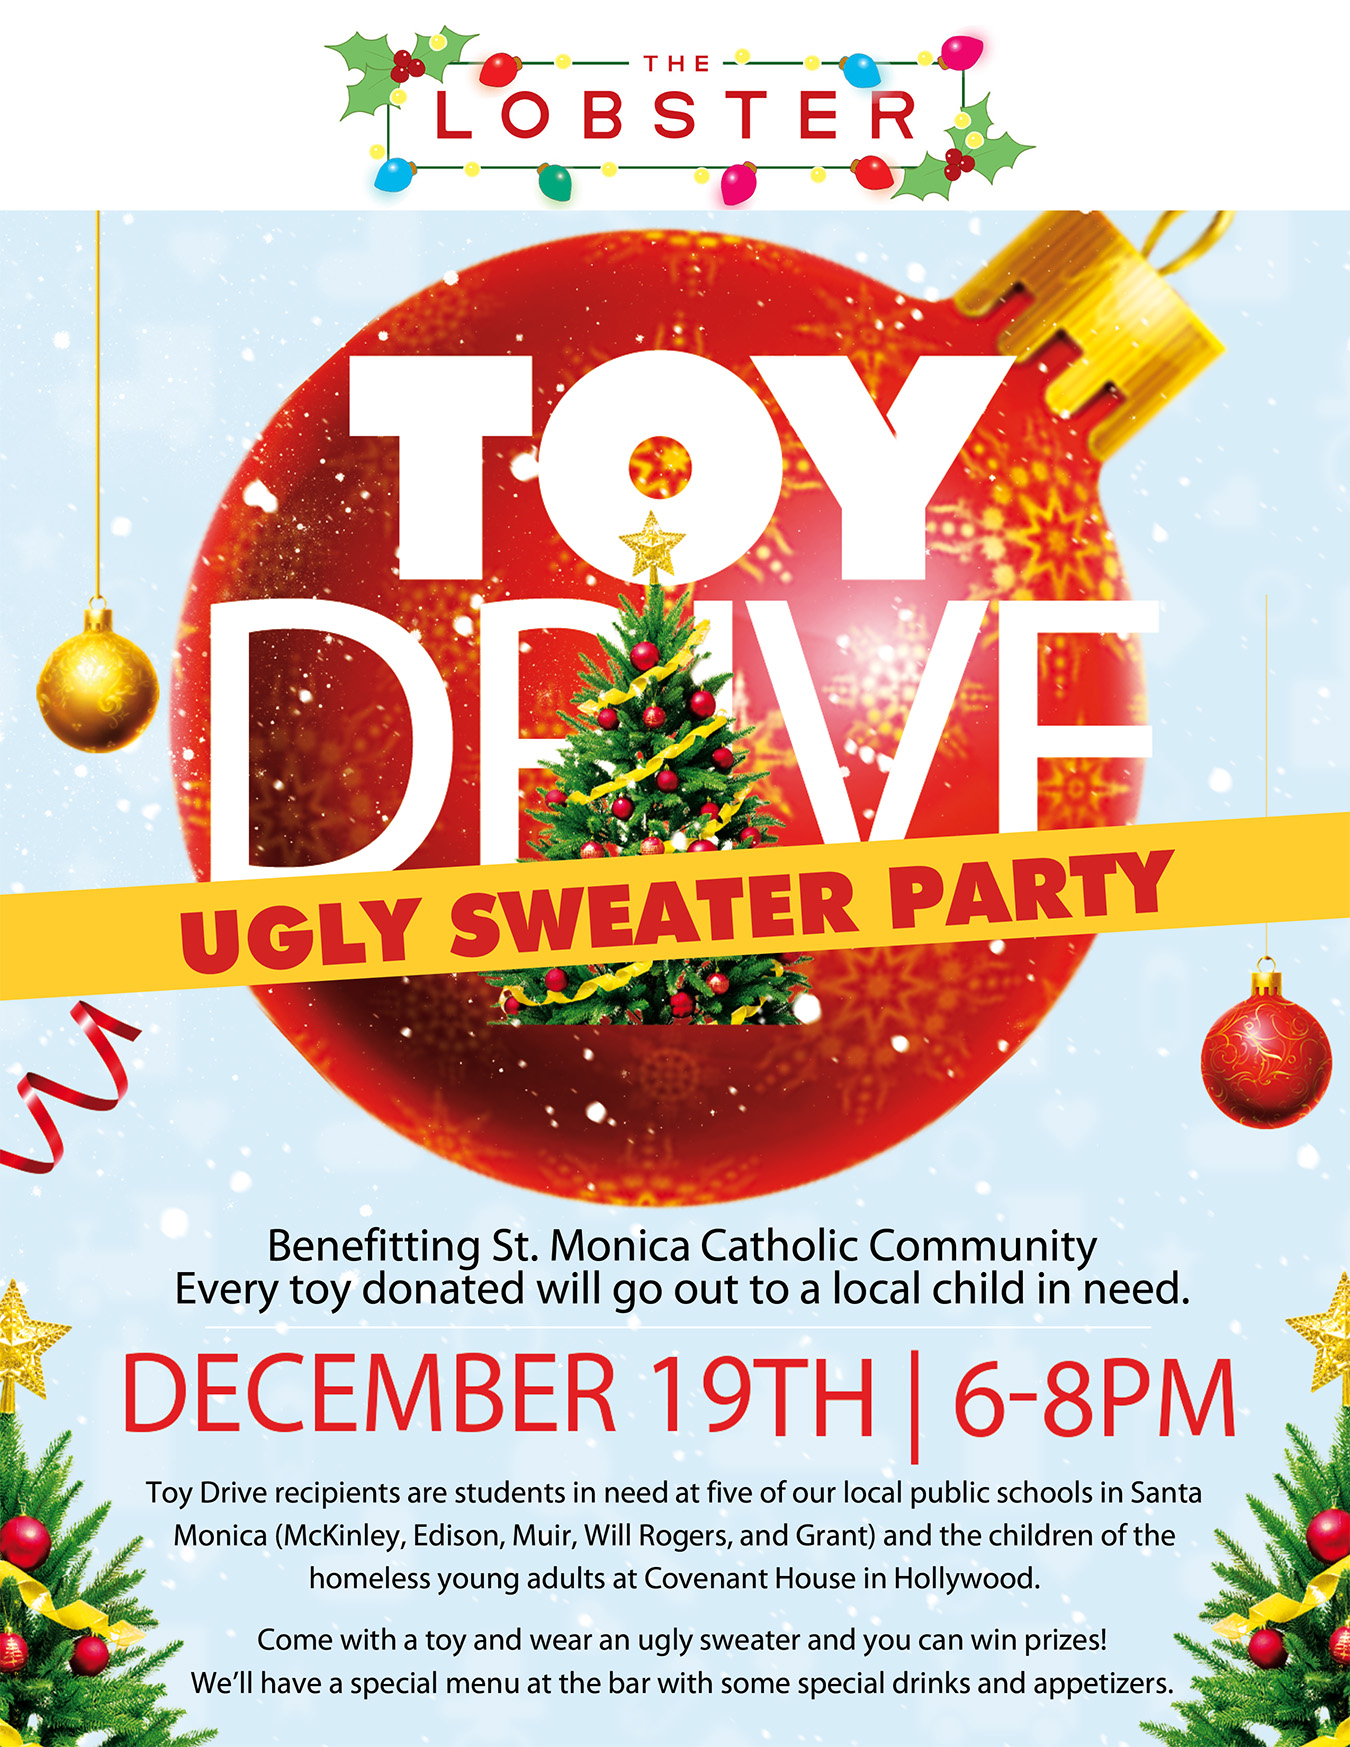 Ugly Sweater Party & Toy Drive at The Lobster